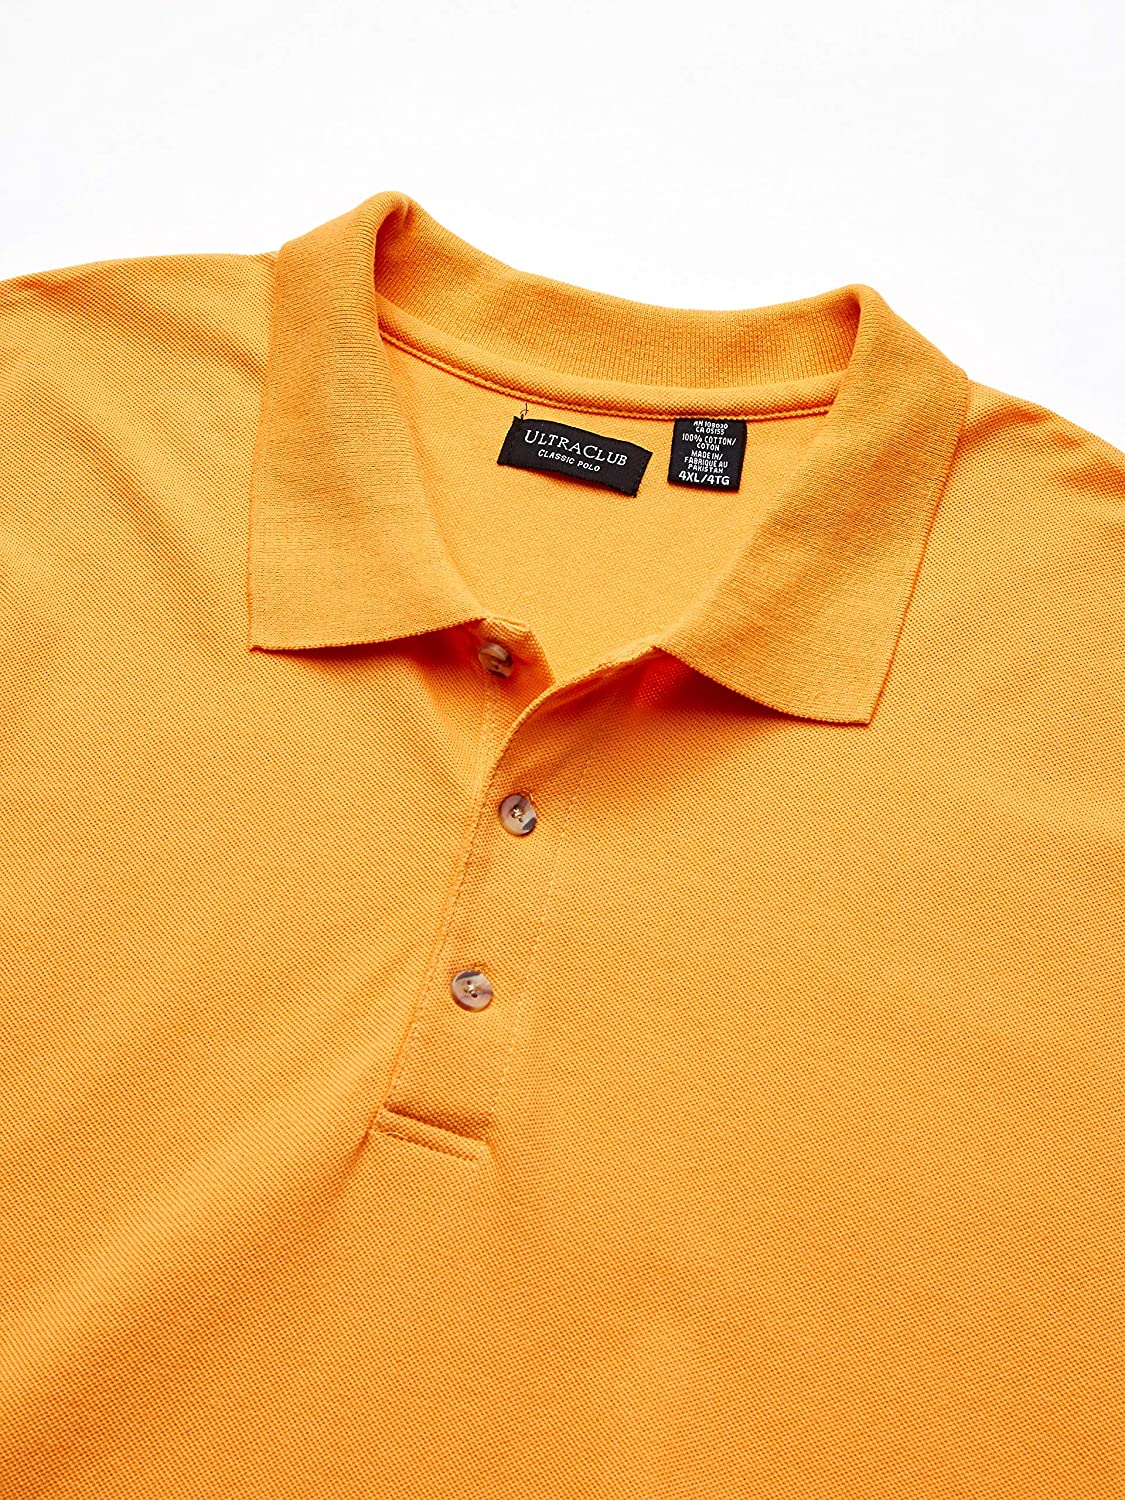 UltraClubs Mens Classic Pique Polo